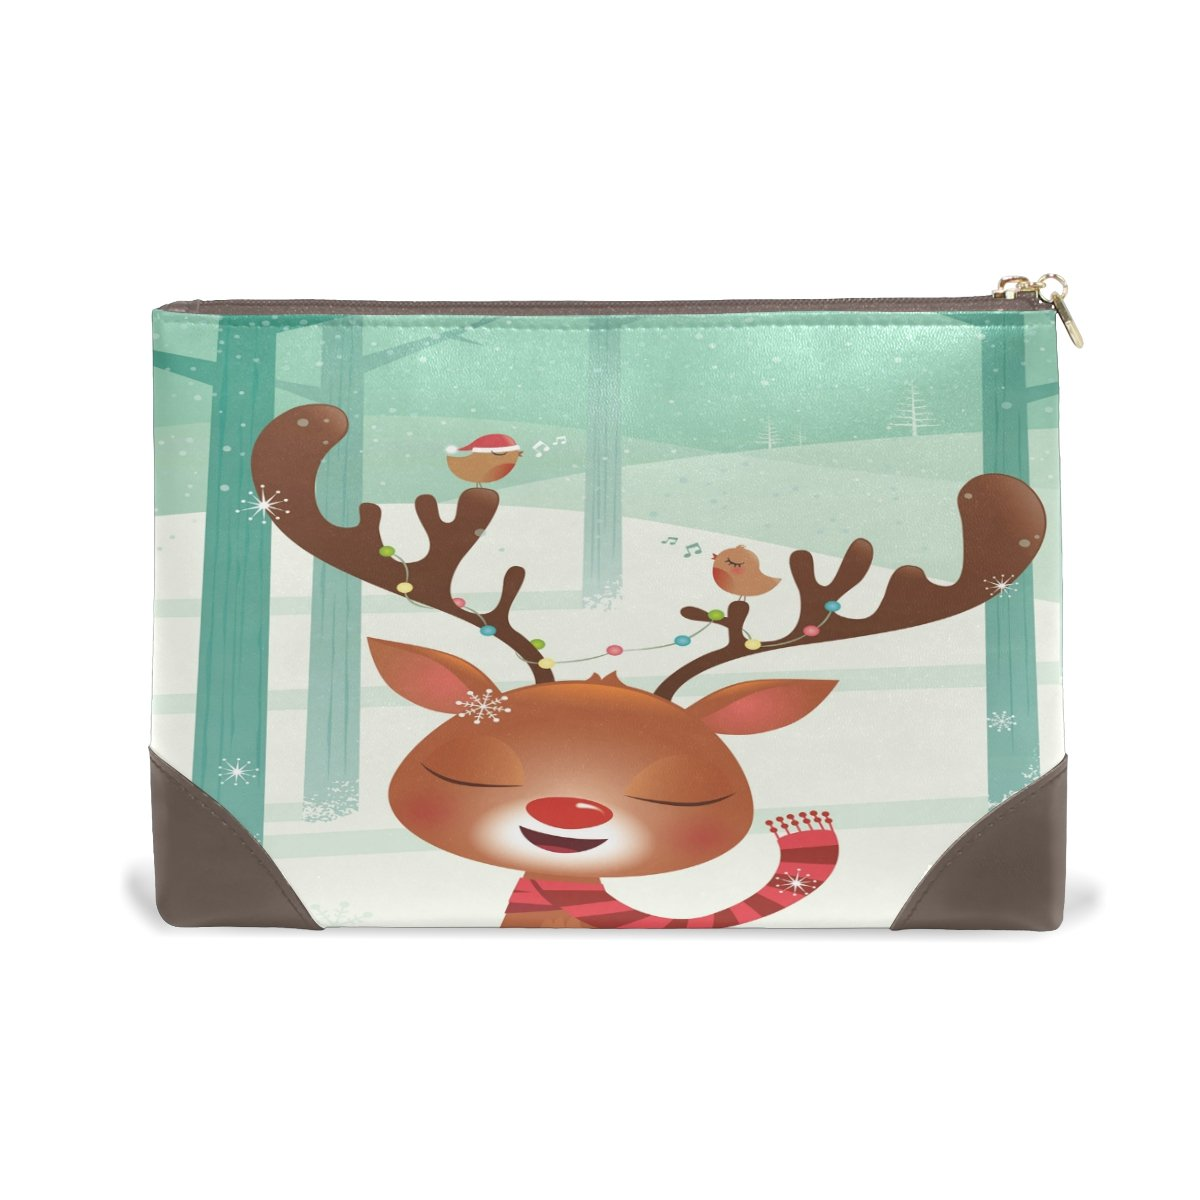 Genuine Leather Makeup Complete Free Shipping Bag Sika Birds Ranking TOP8 Ladies Comestic Case Deer